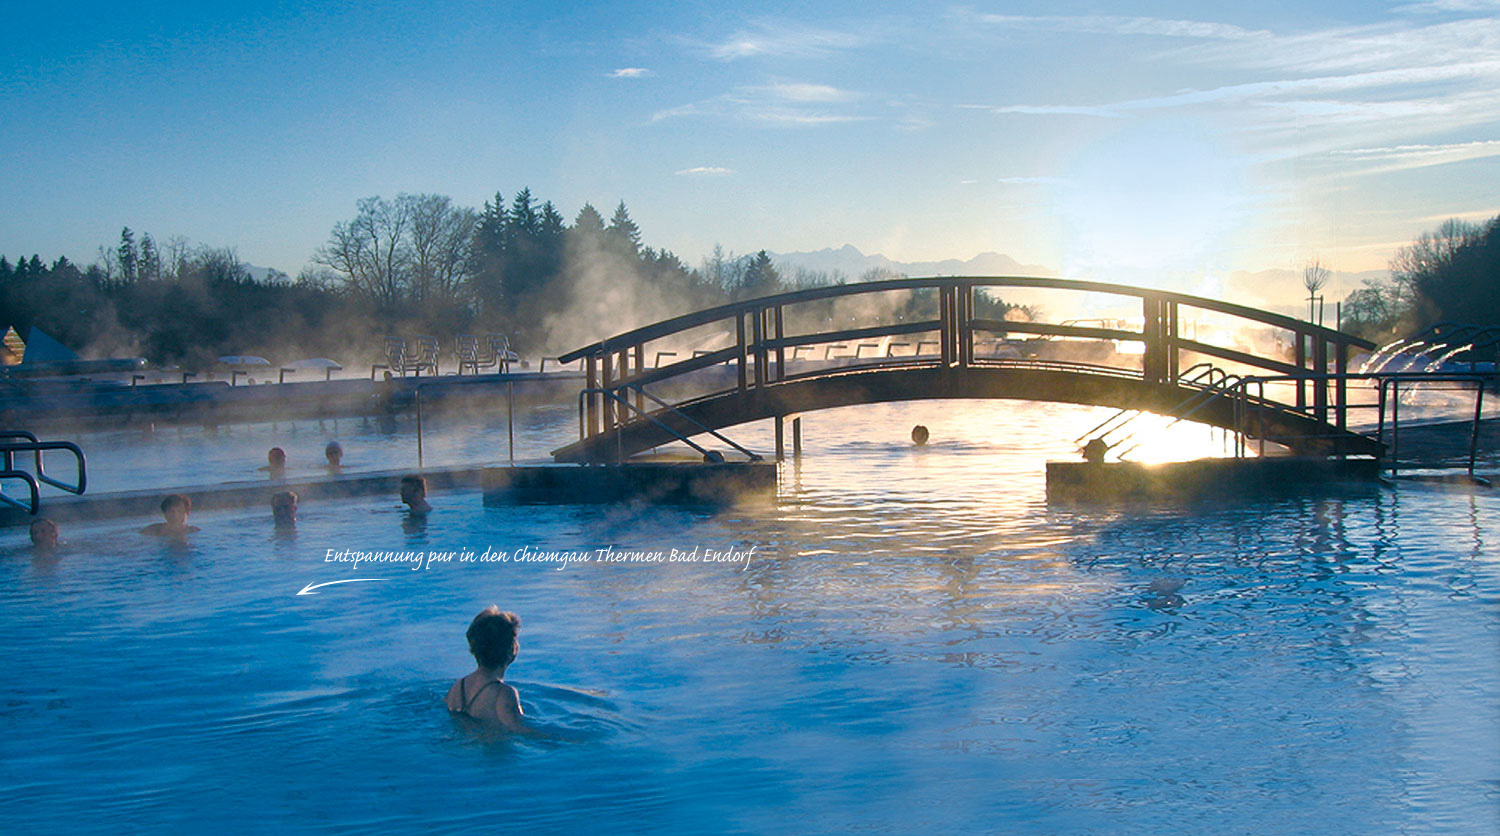 Kur Wellness Chiemgau, Chiemgau-Therme Bad Endorf